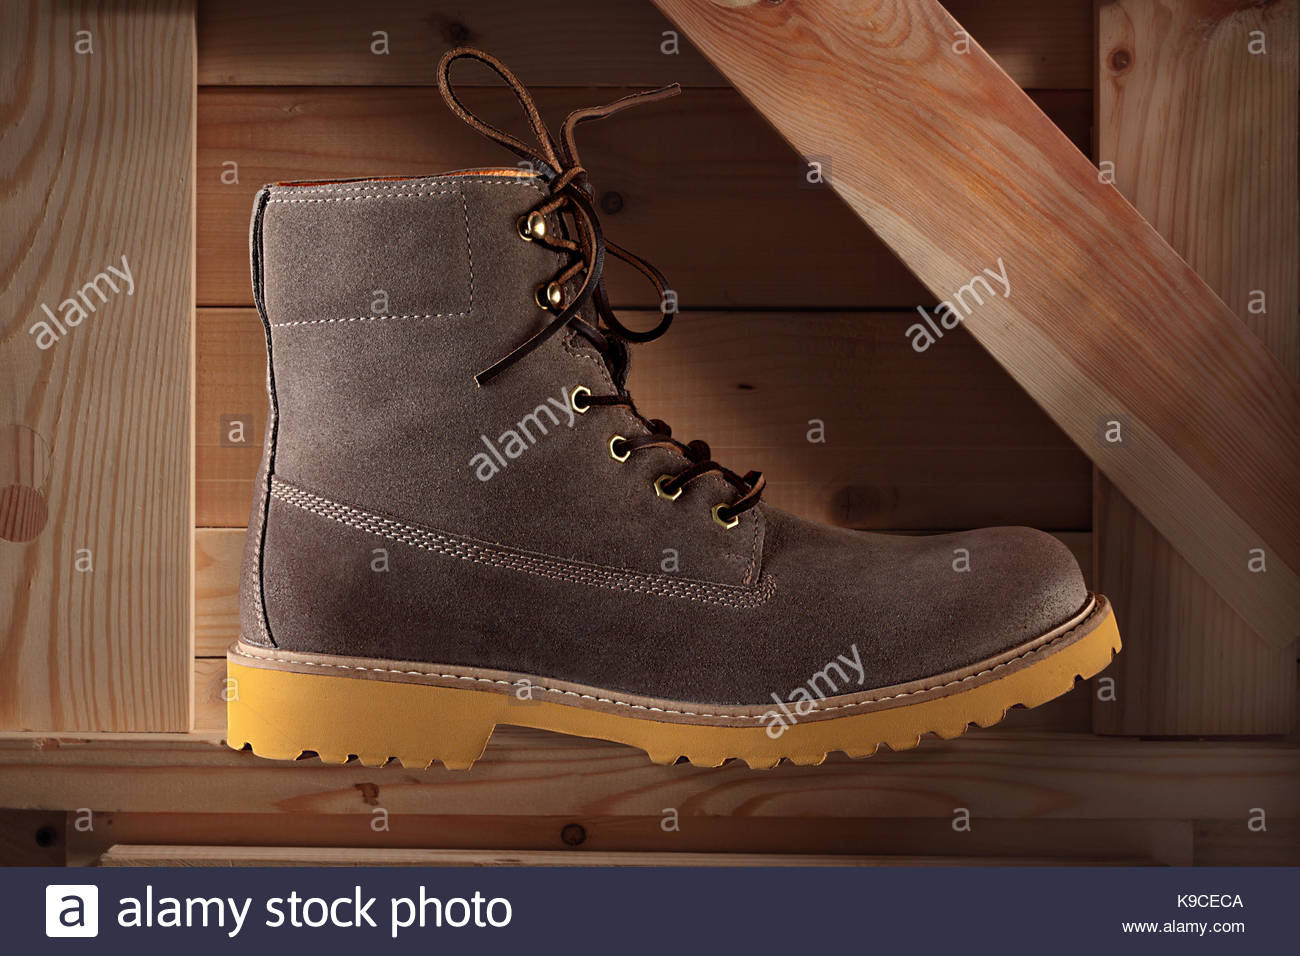 studio still life of a suede safety boot  on a wooden backgroun - Stock Image